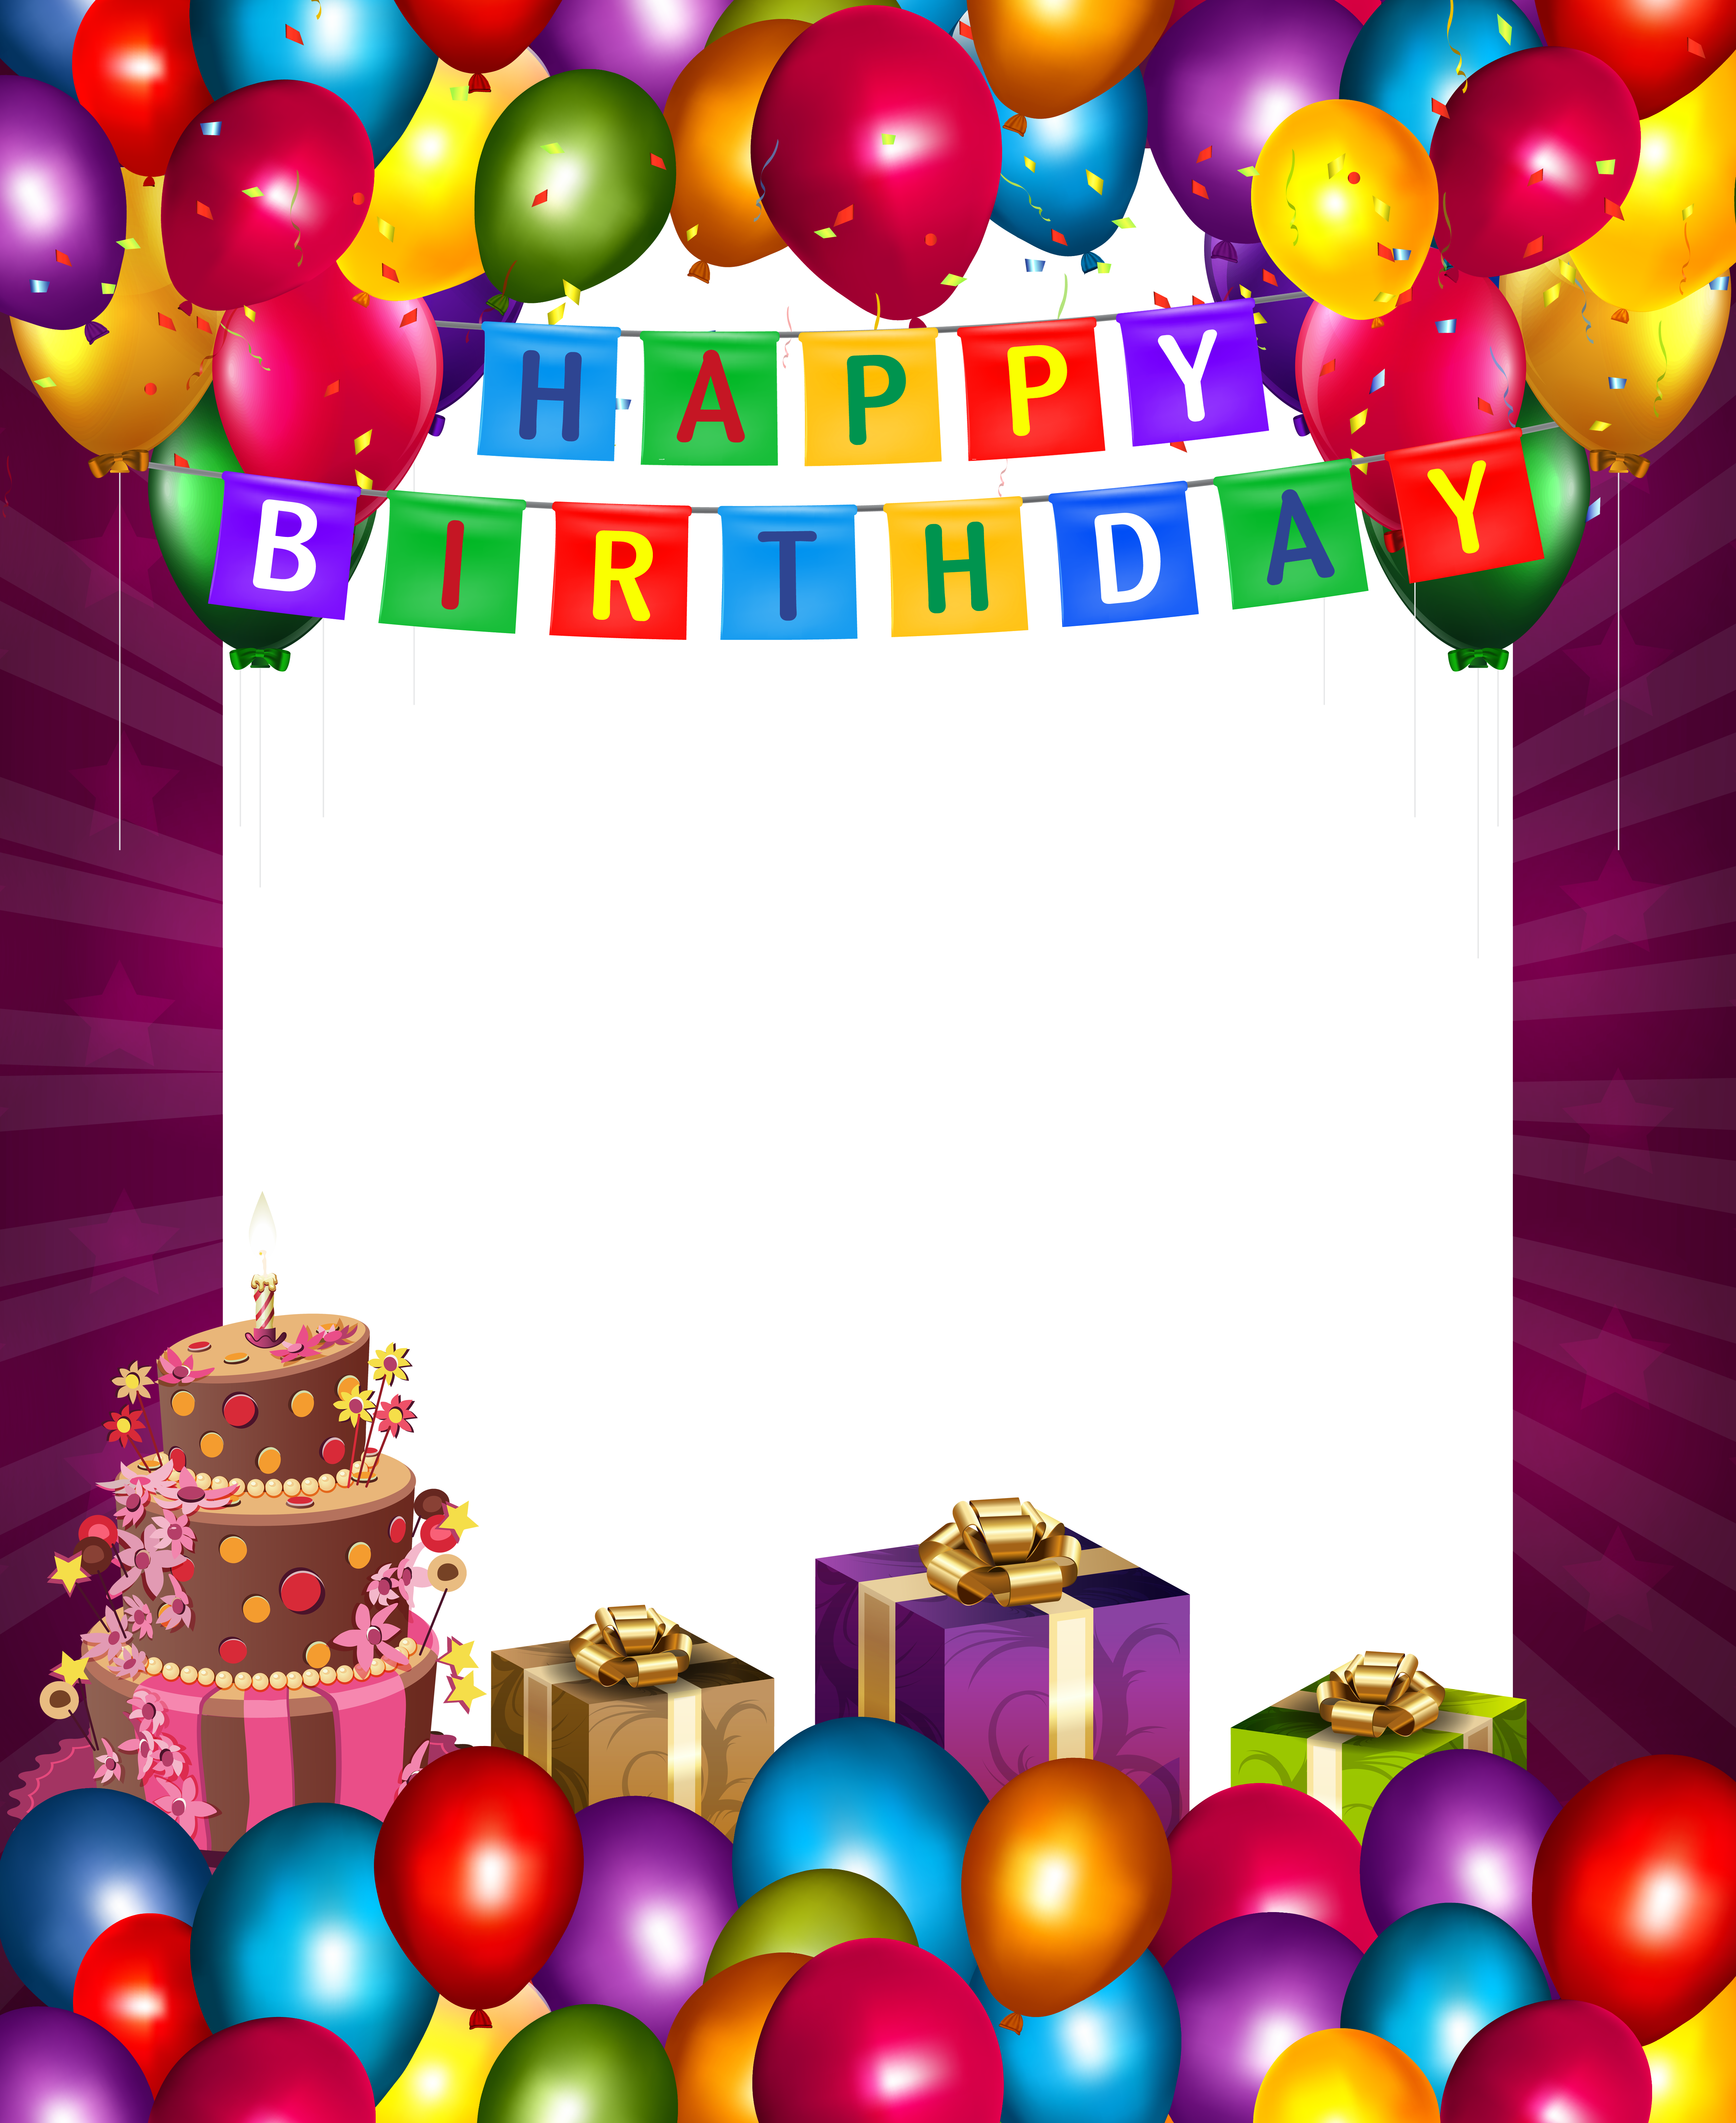 Party frame png. Happy birthday with balloons